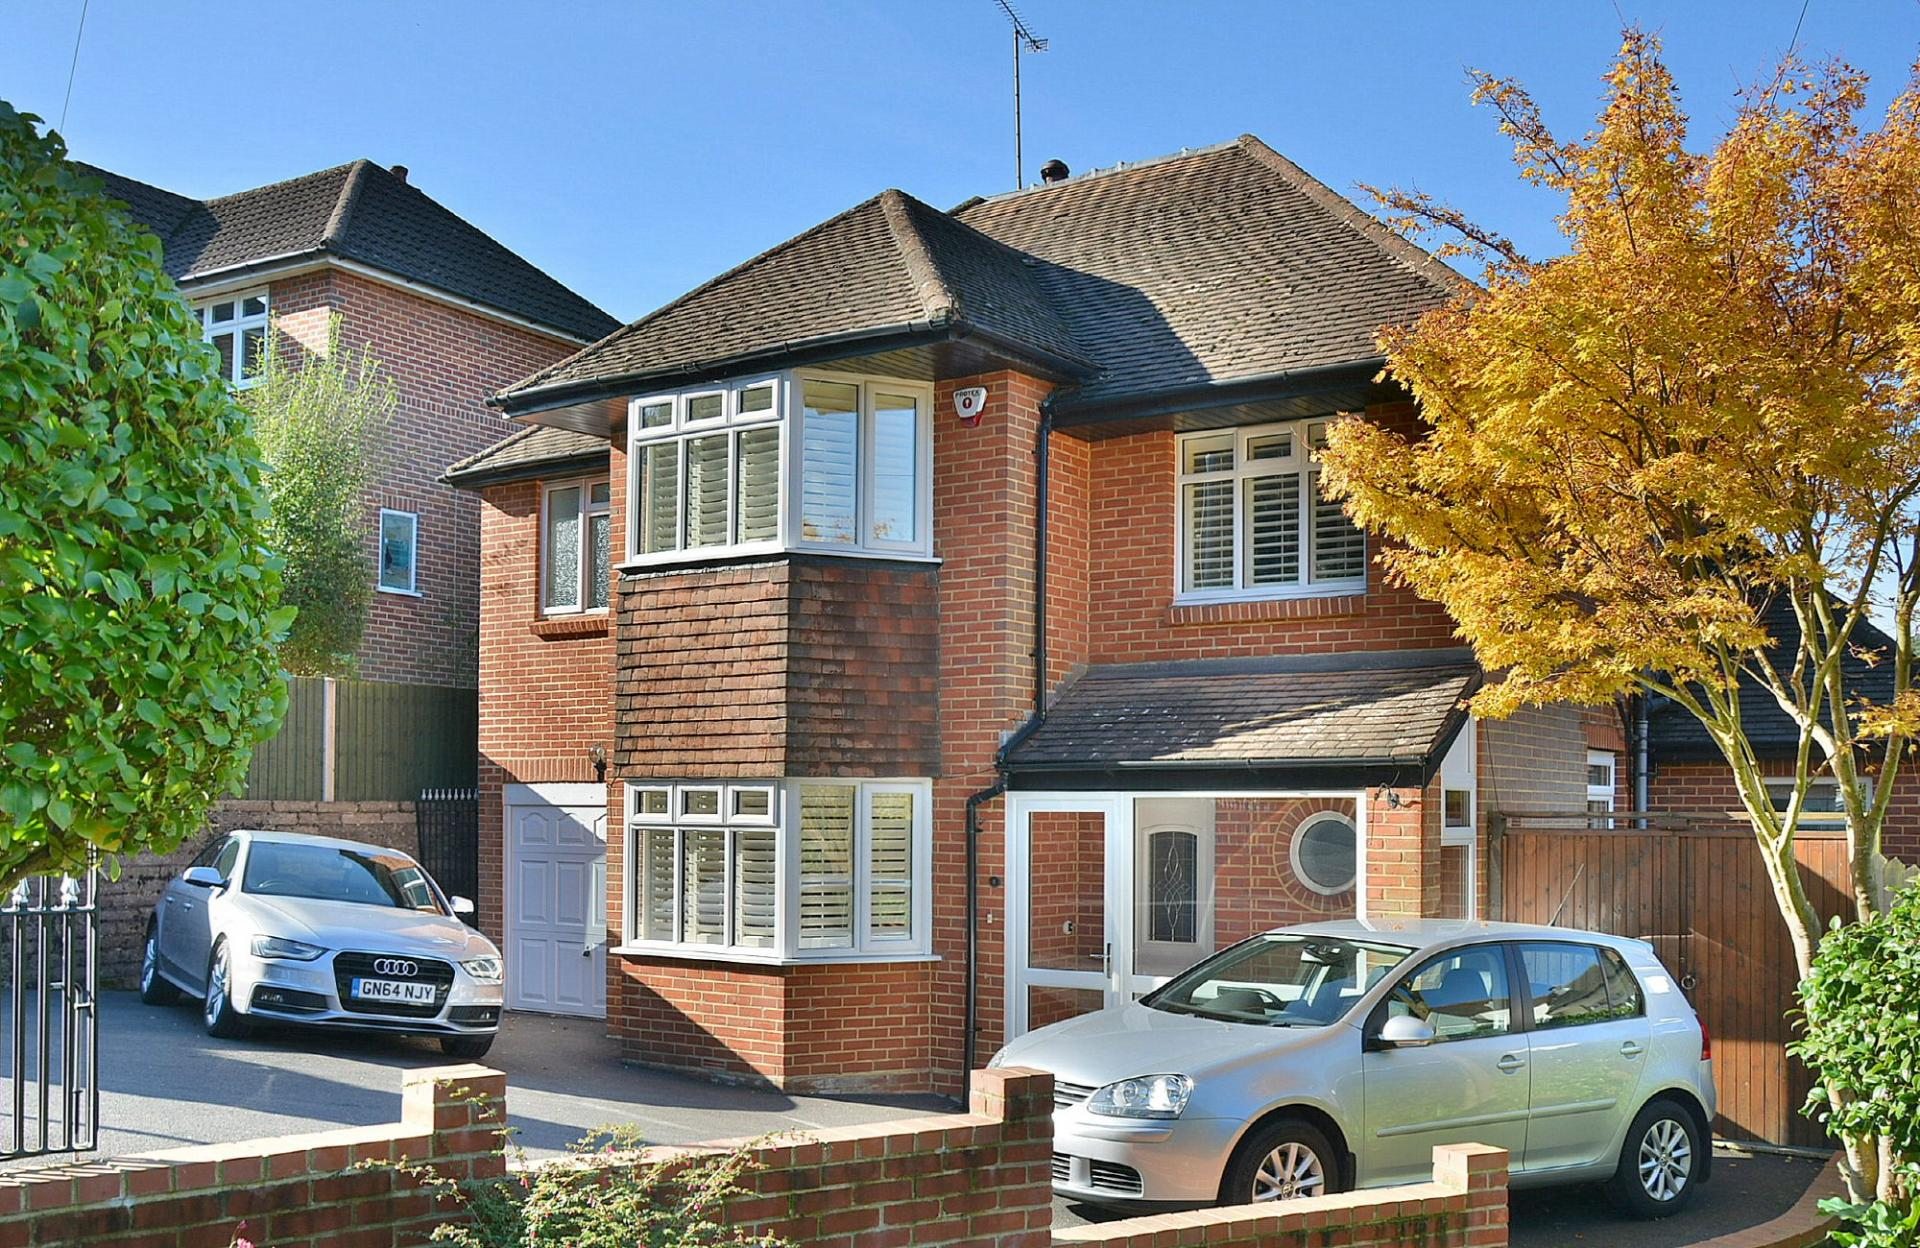 Detached Properties For Sale At Bournemouth